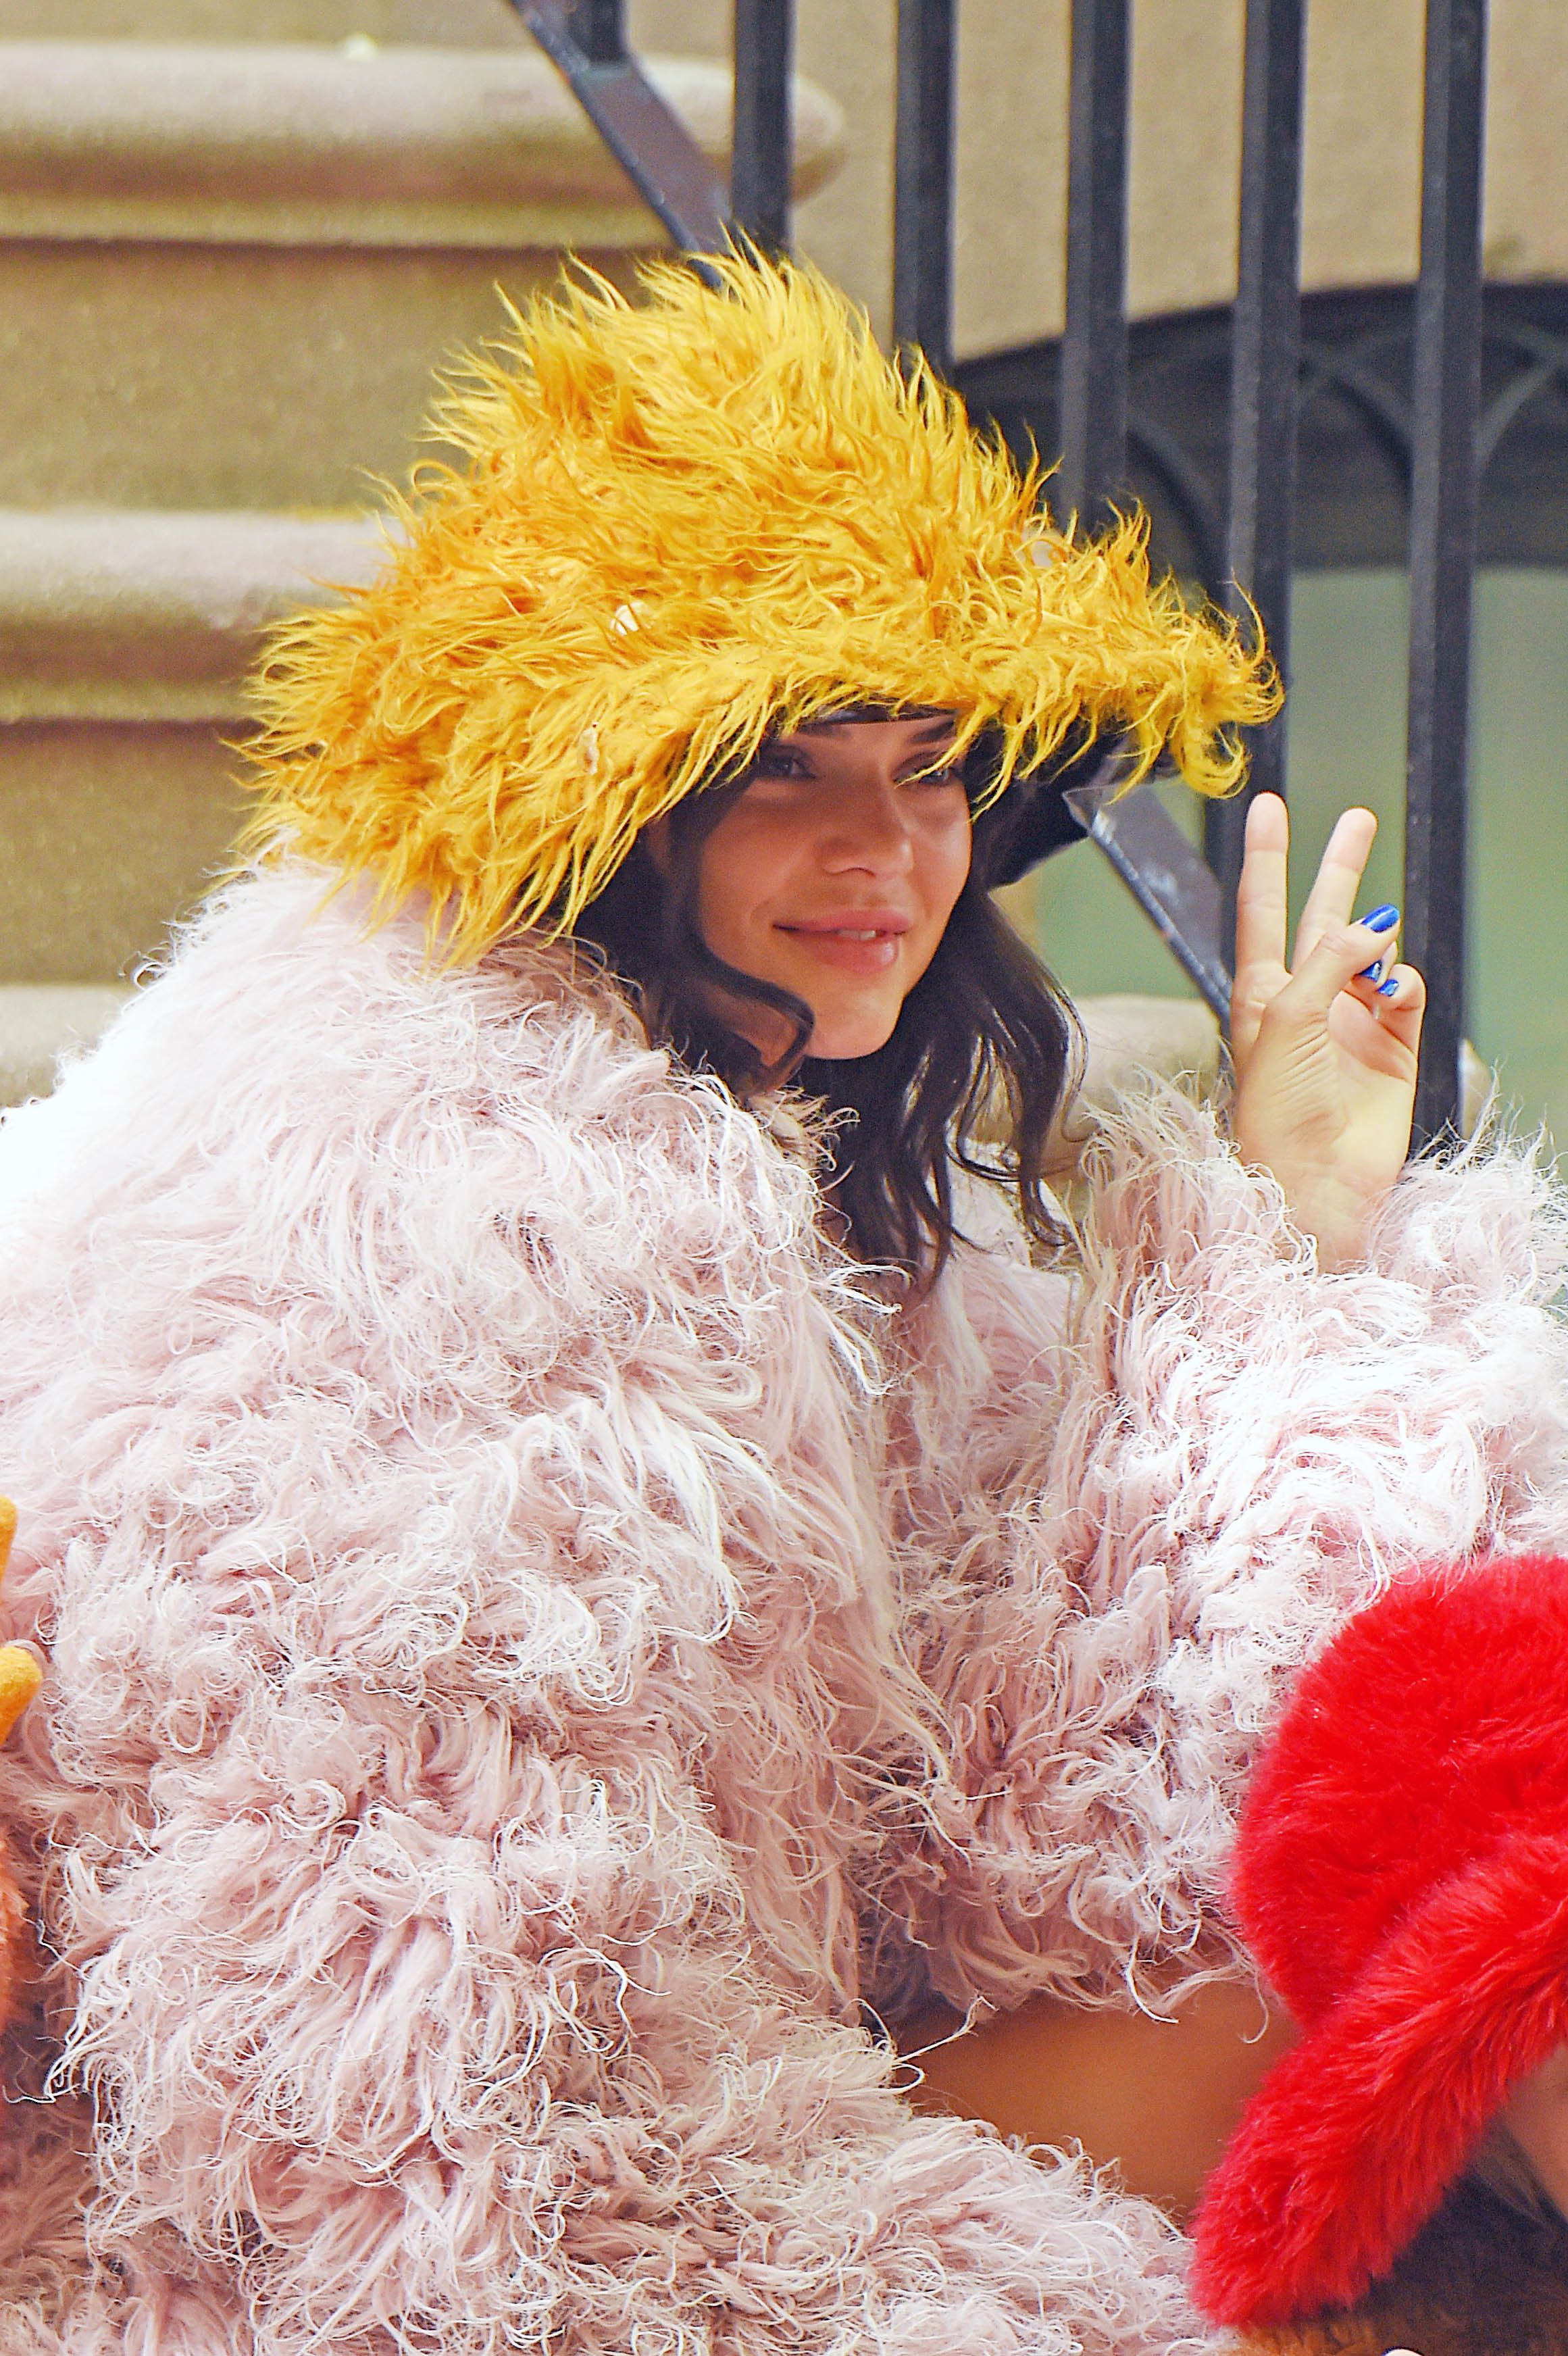 Kendall Jenner Lives Our Childhood Dreams As She Strikes A Pose With The